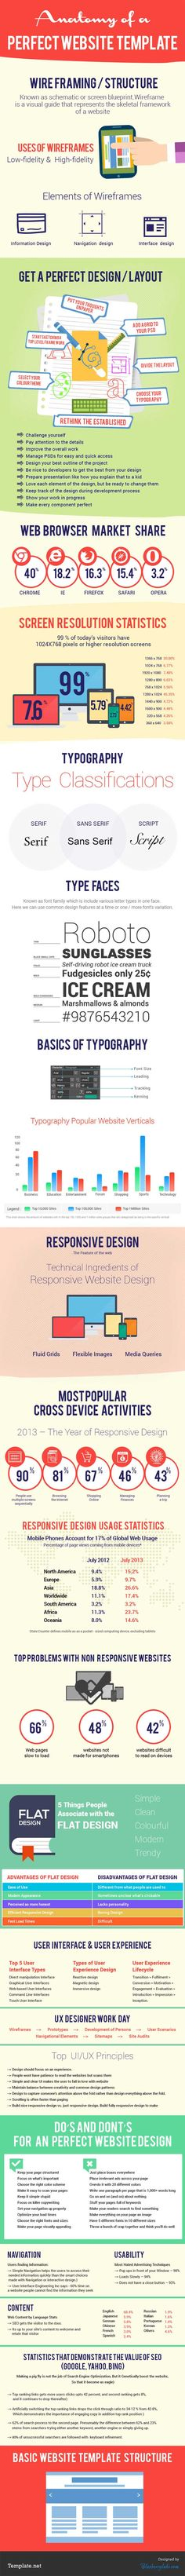 websitetemplate1